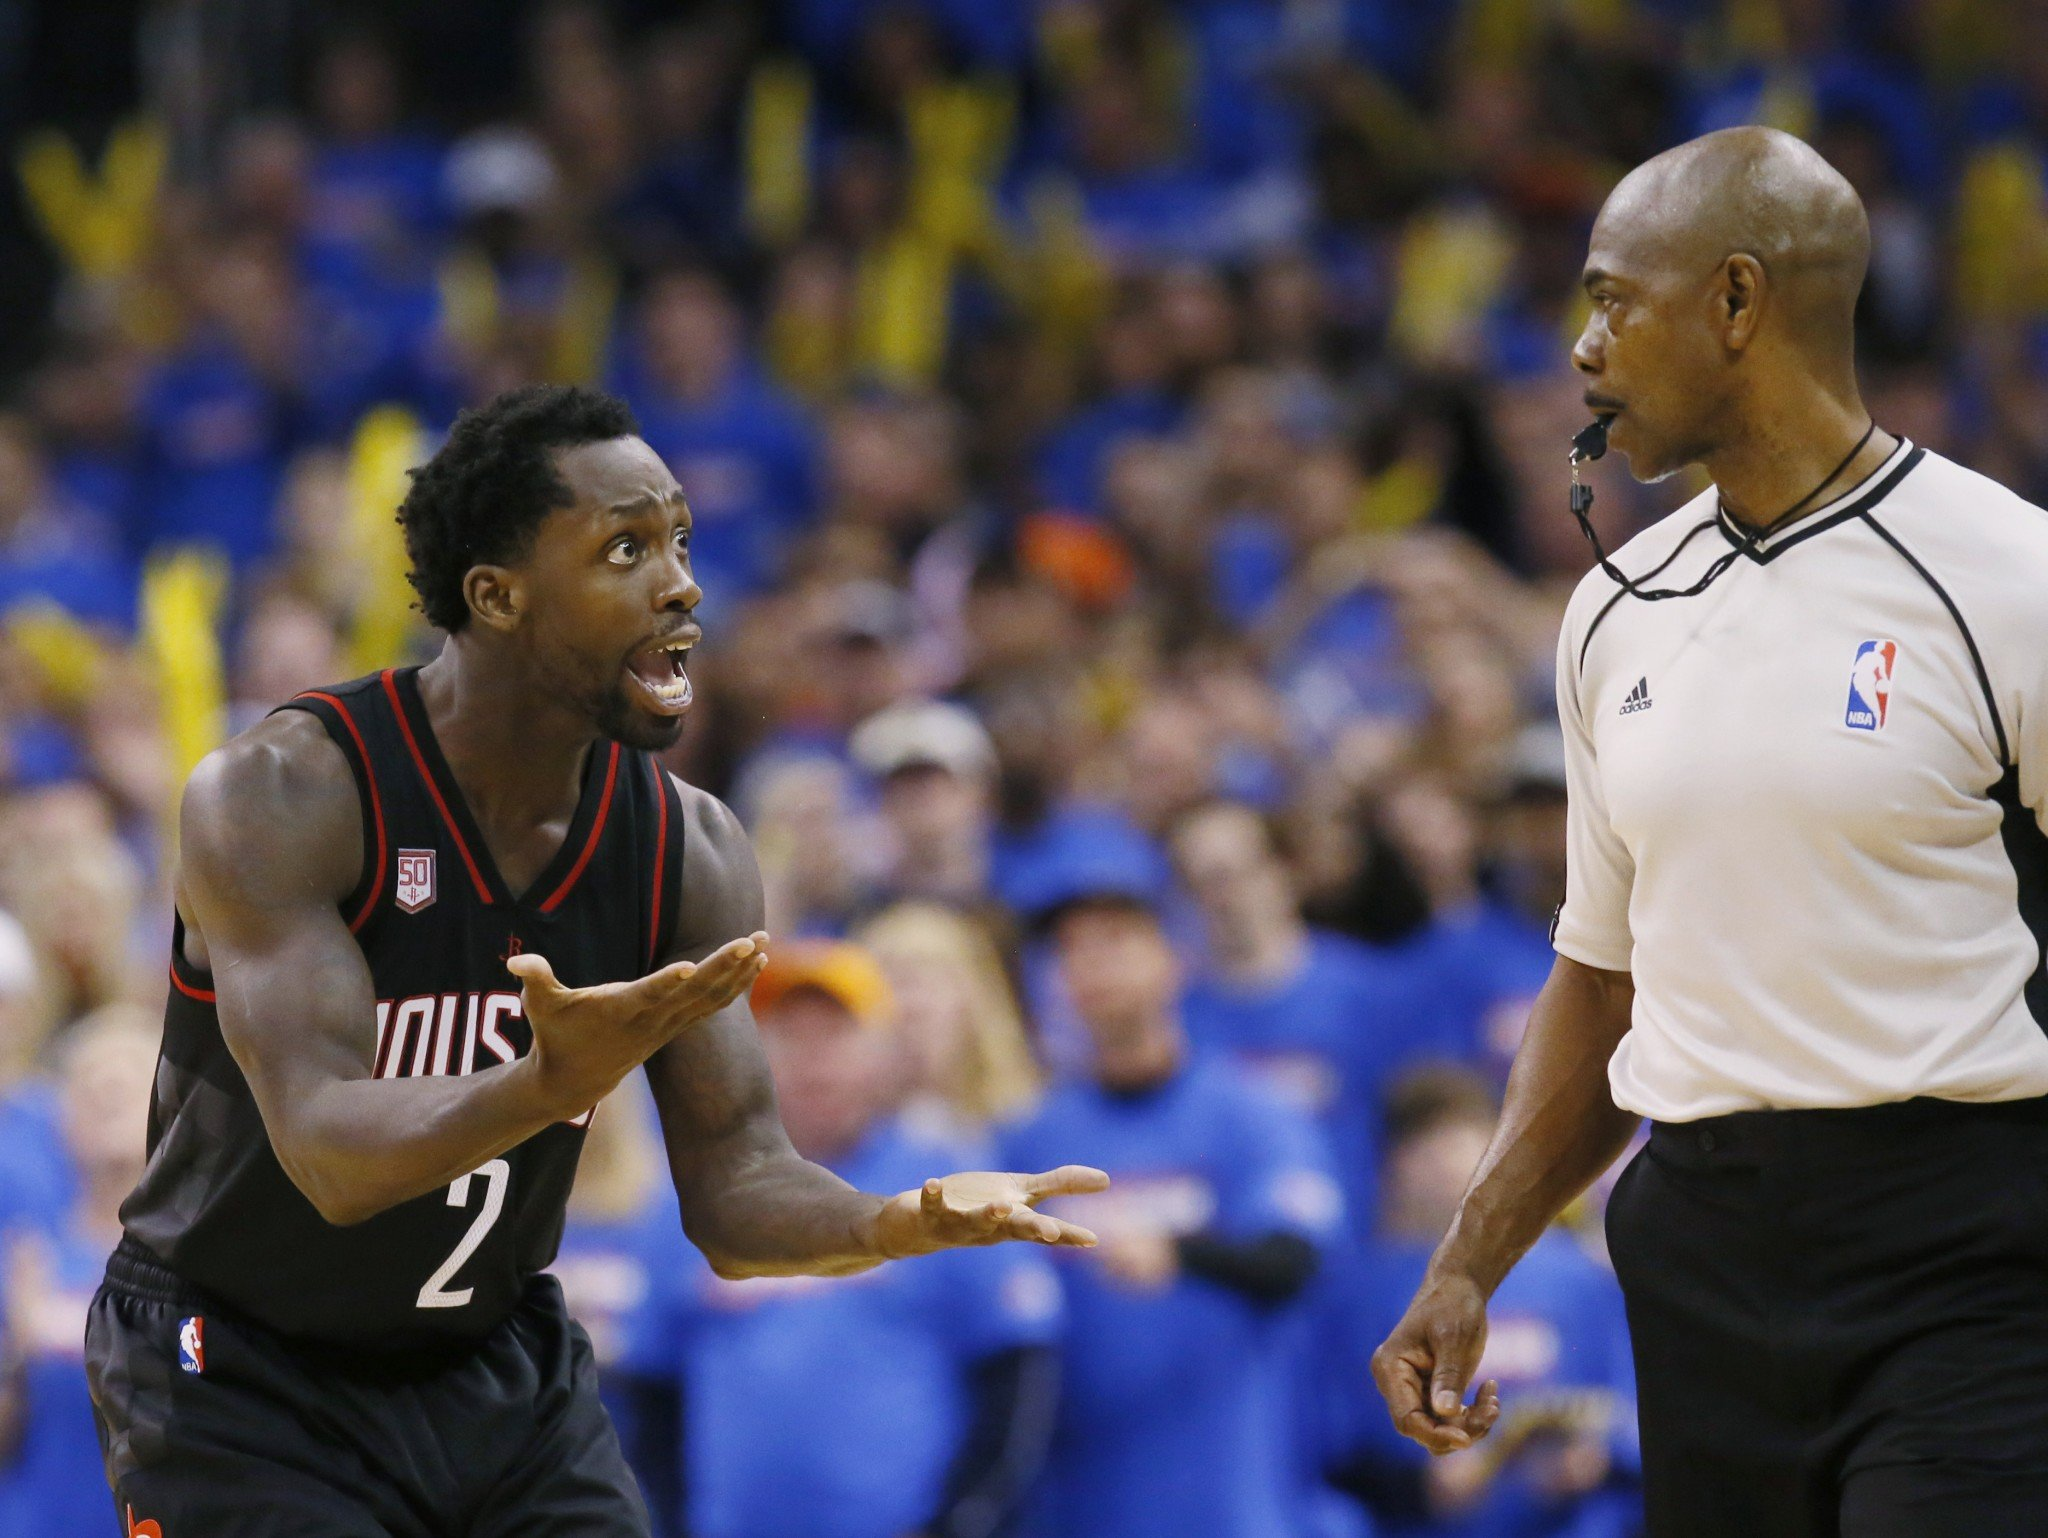 Rockets guard Patrick Beverley discusses a call with official Tom Washington during Game 3 against the Thunder on Friday. (AP)